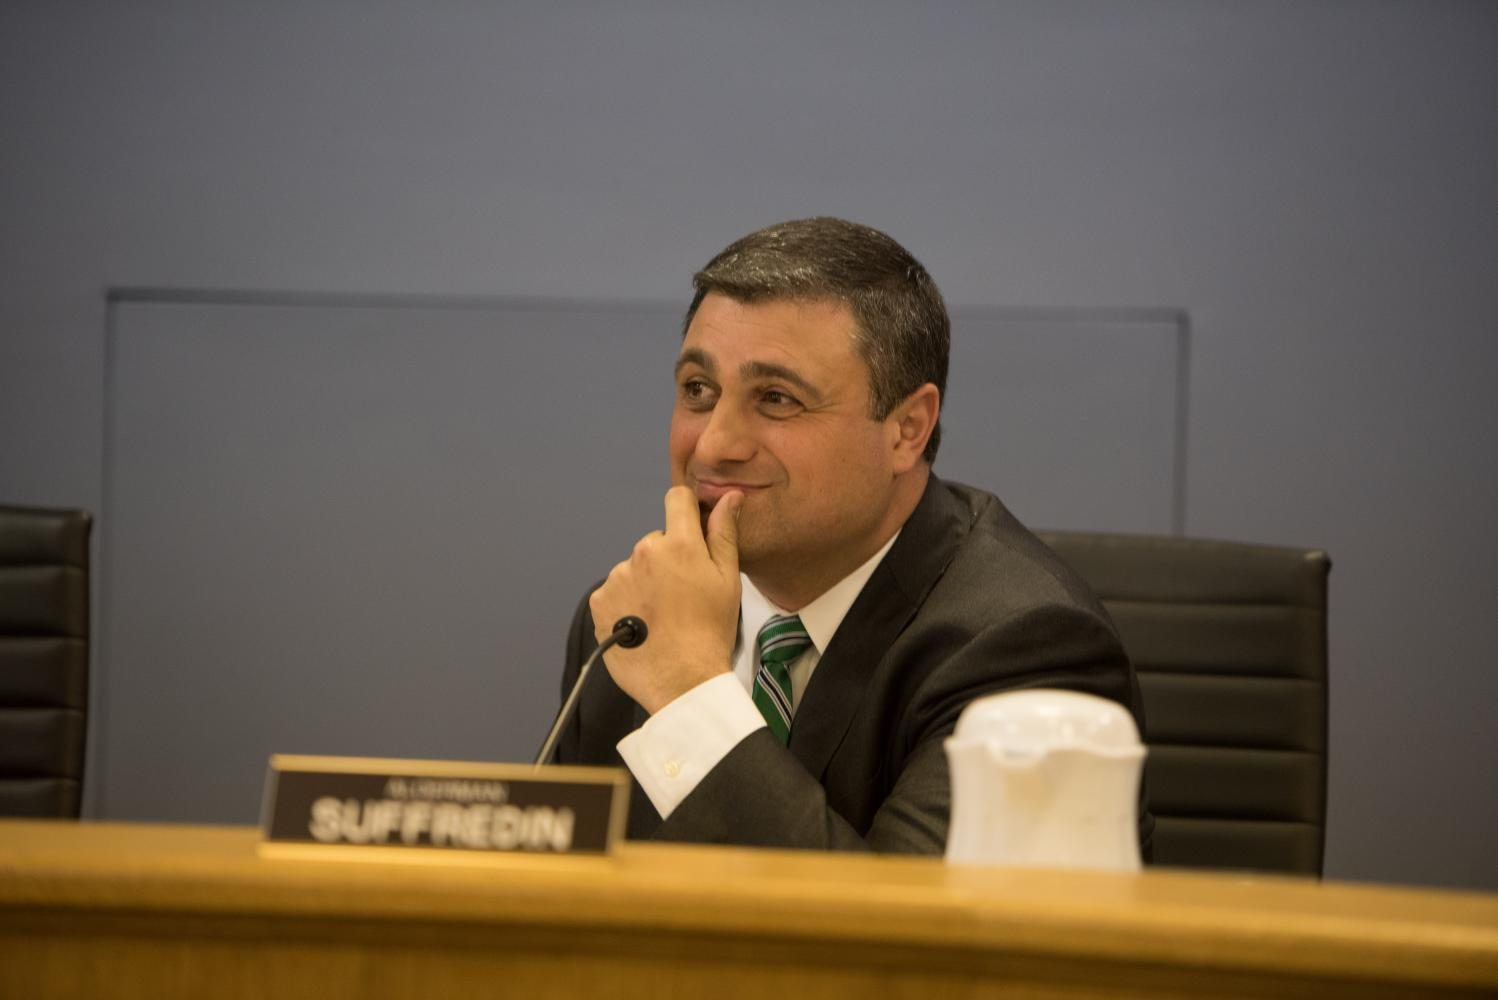 Ald. Tom Suffredin (6th). Suffredin was the only city council member to oppose the security contract extension, citing concerns about a lack of support for individuals experiencing homelessness.